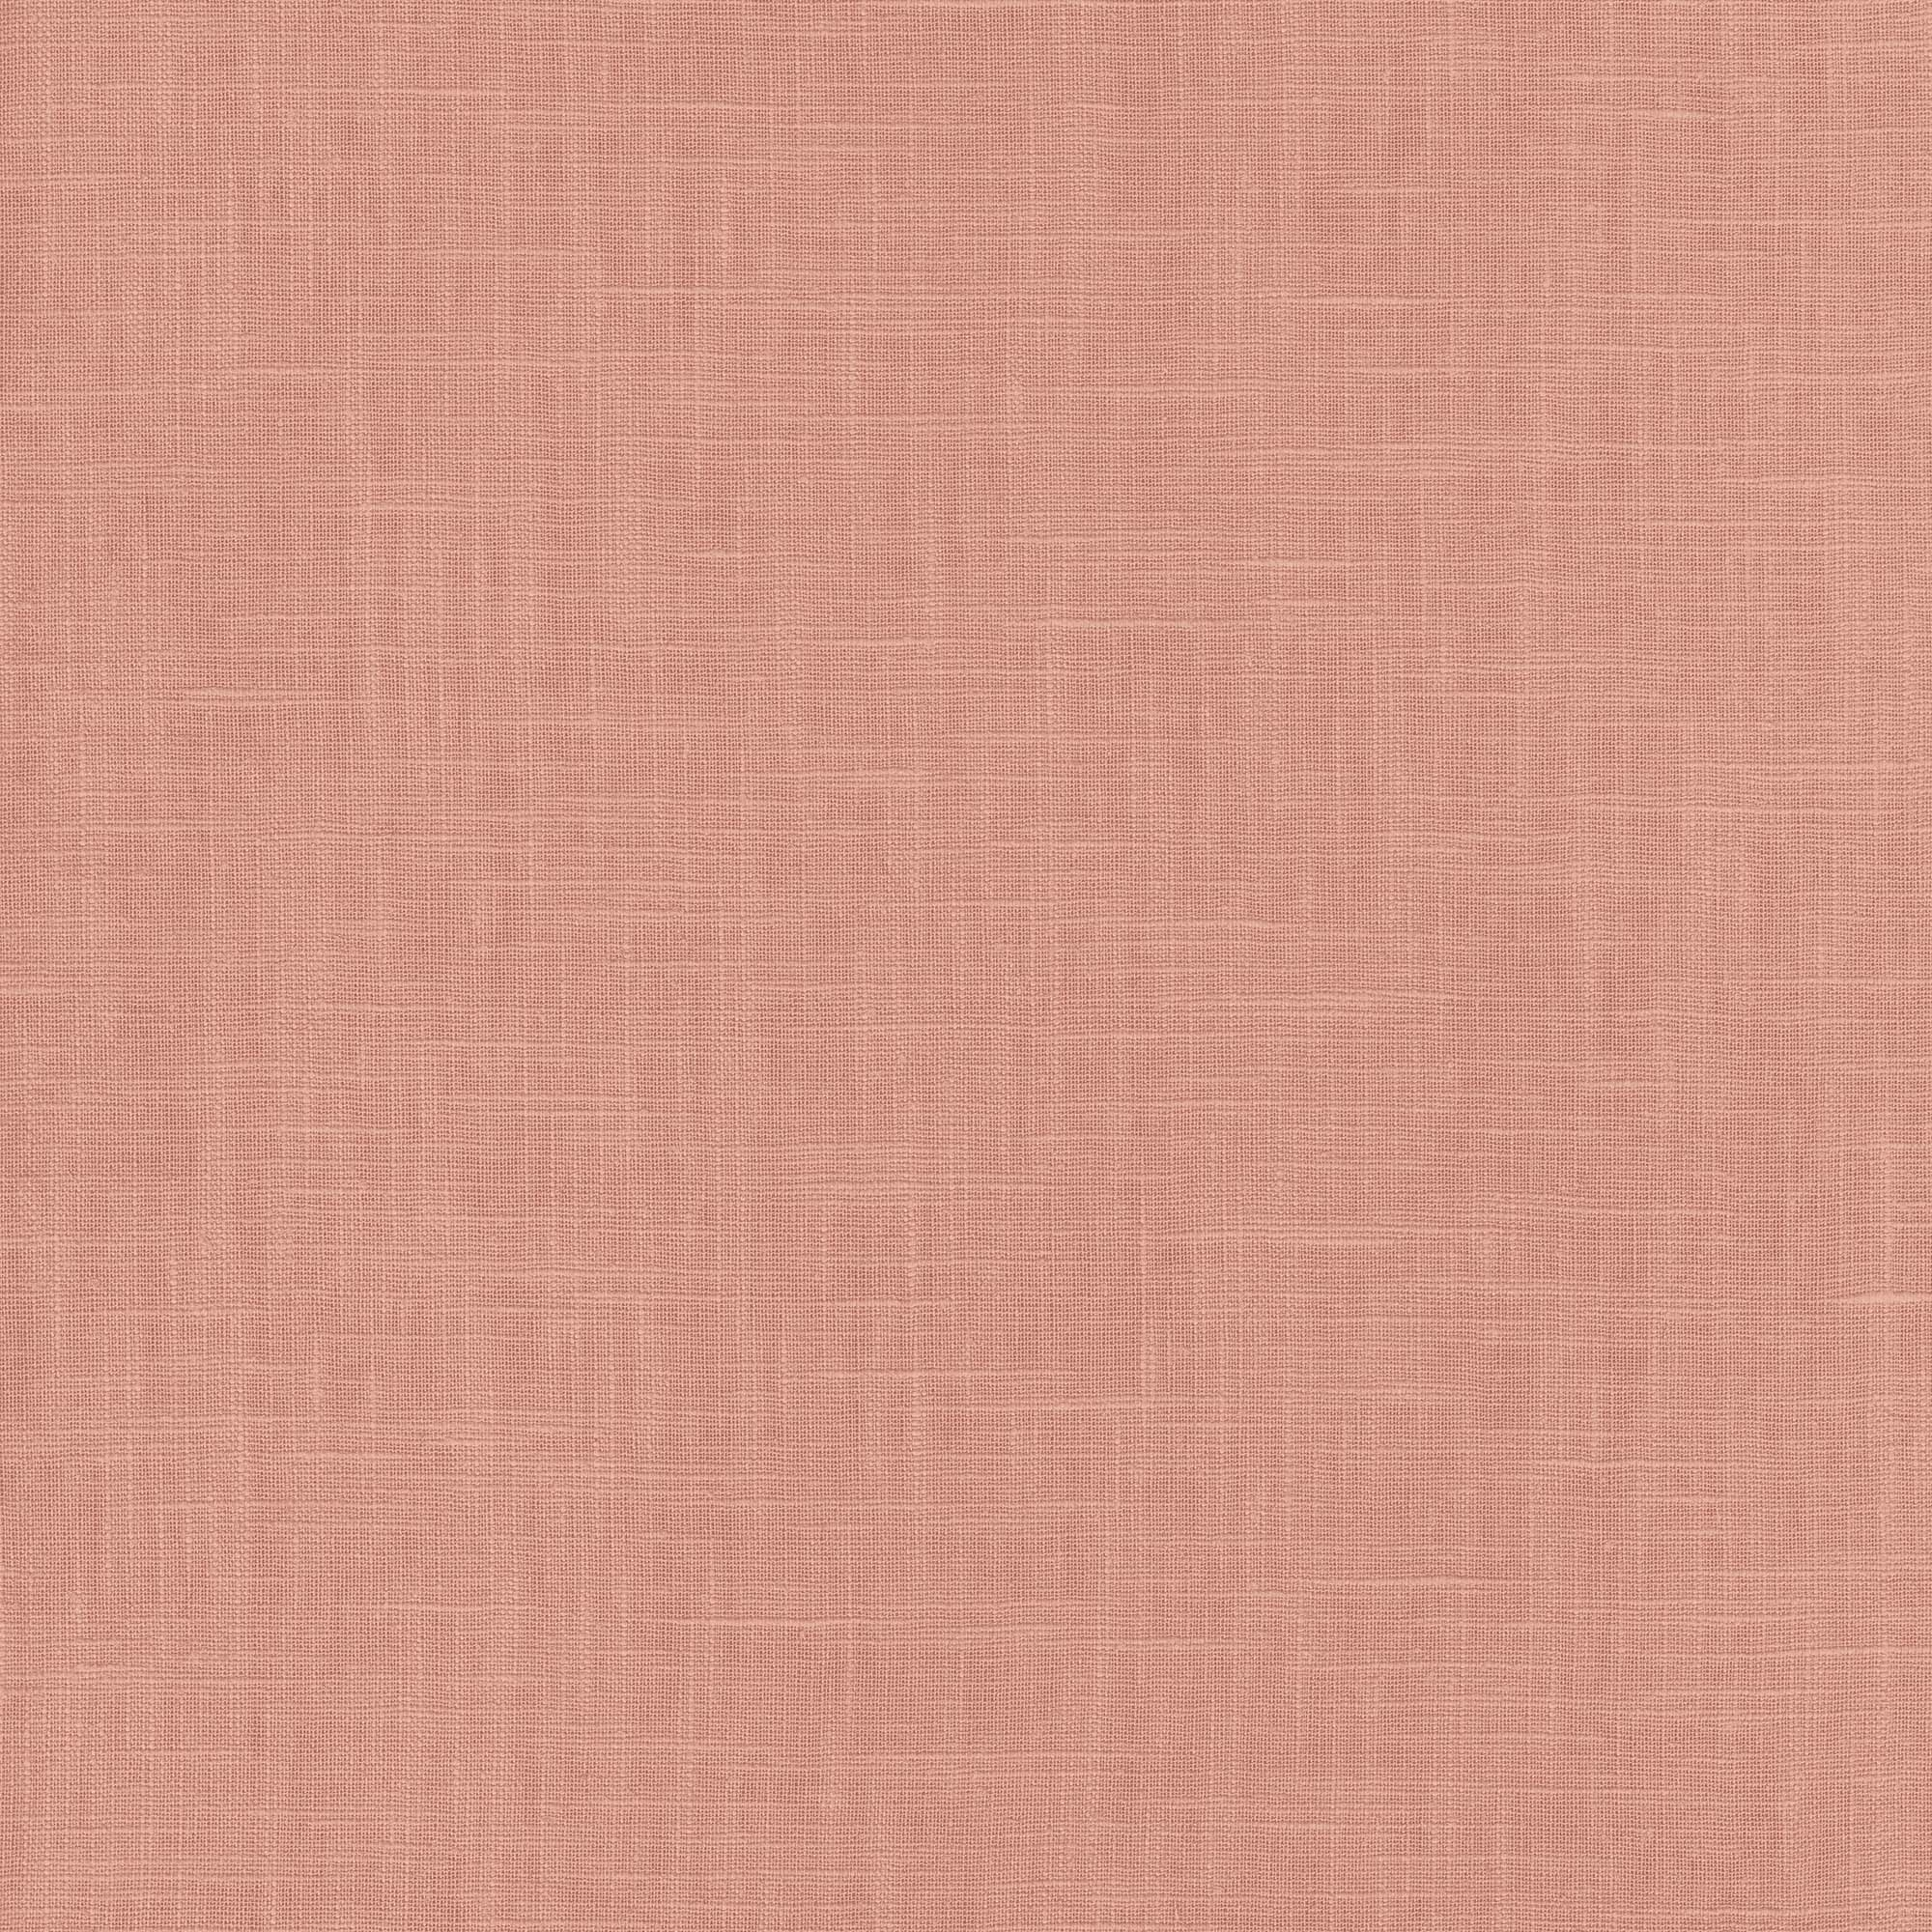 Wallquest Indie Linen Embossed Vinyl